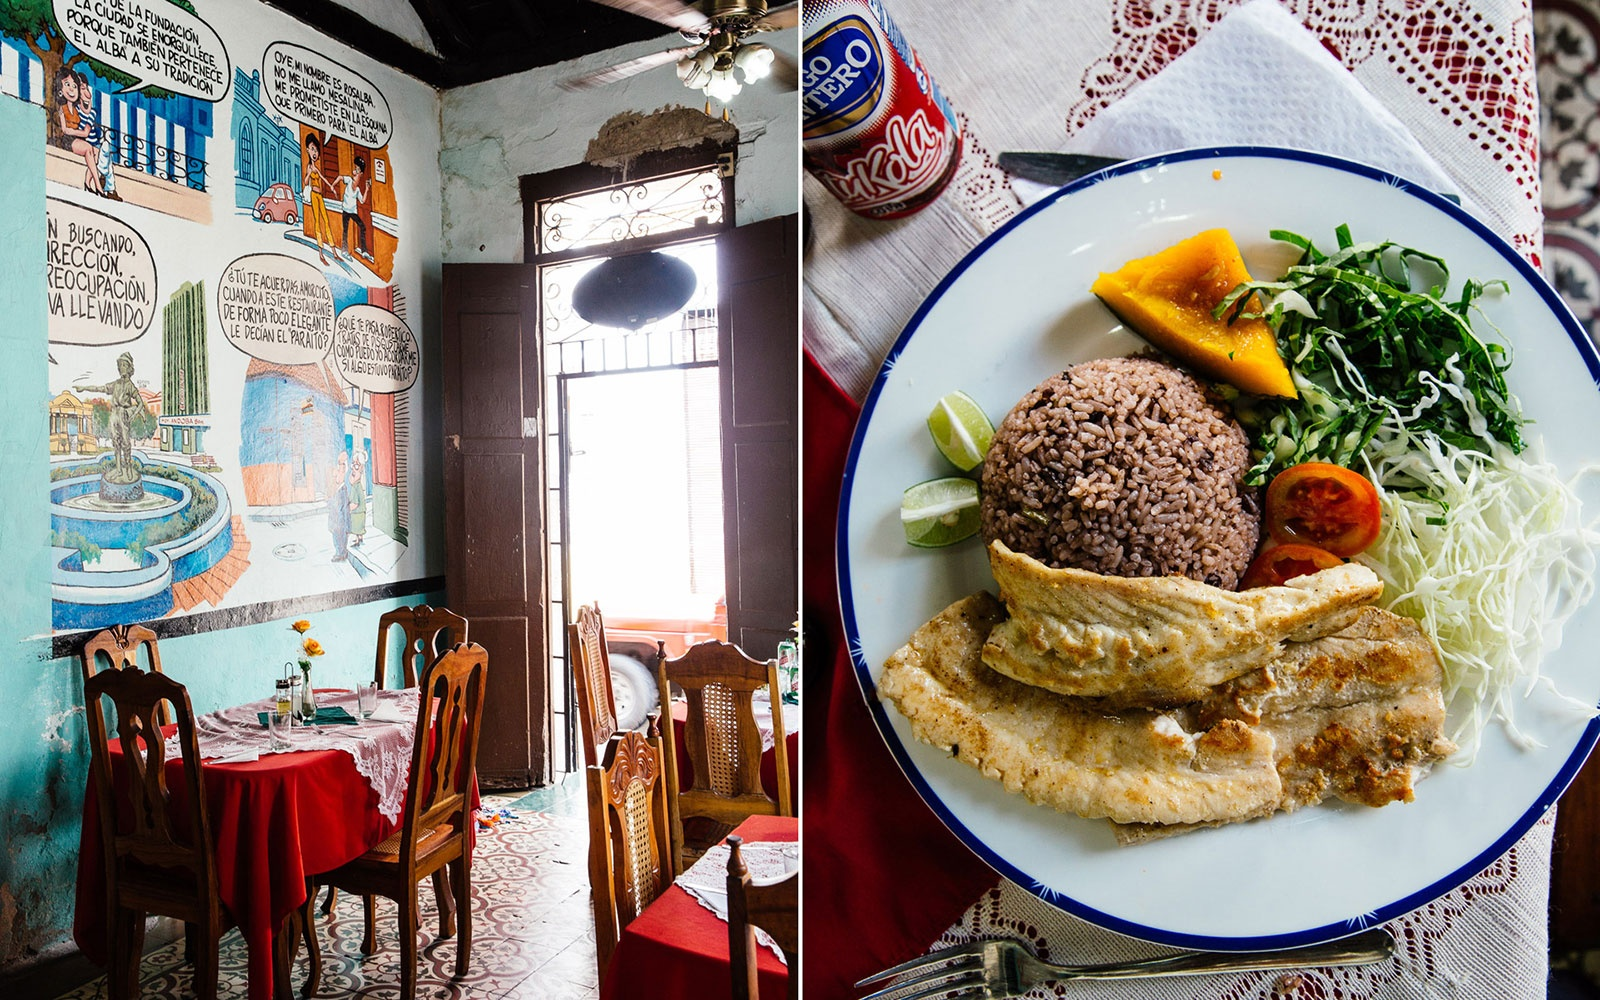 In Santa Clara: Eat Traditional Food at a Local Paladar